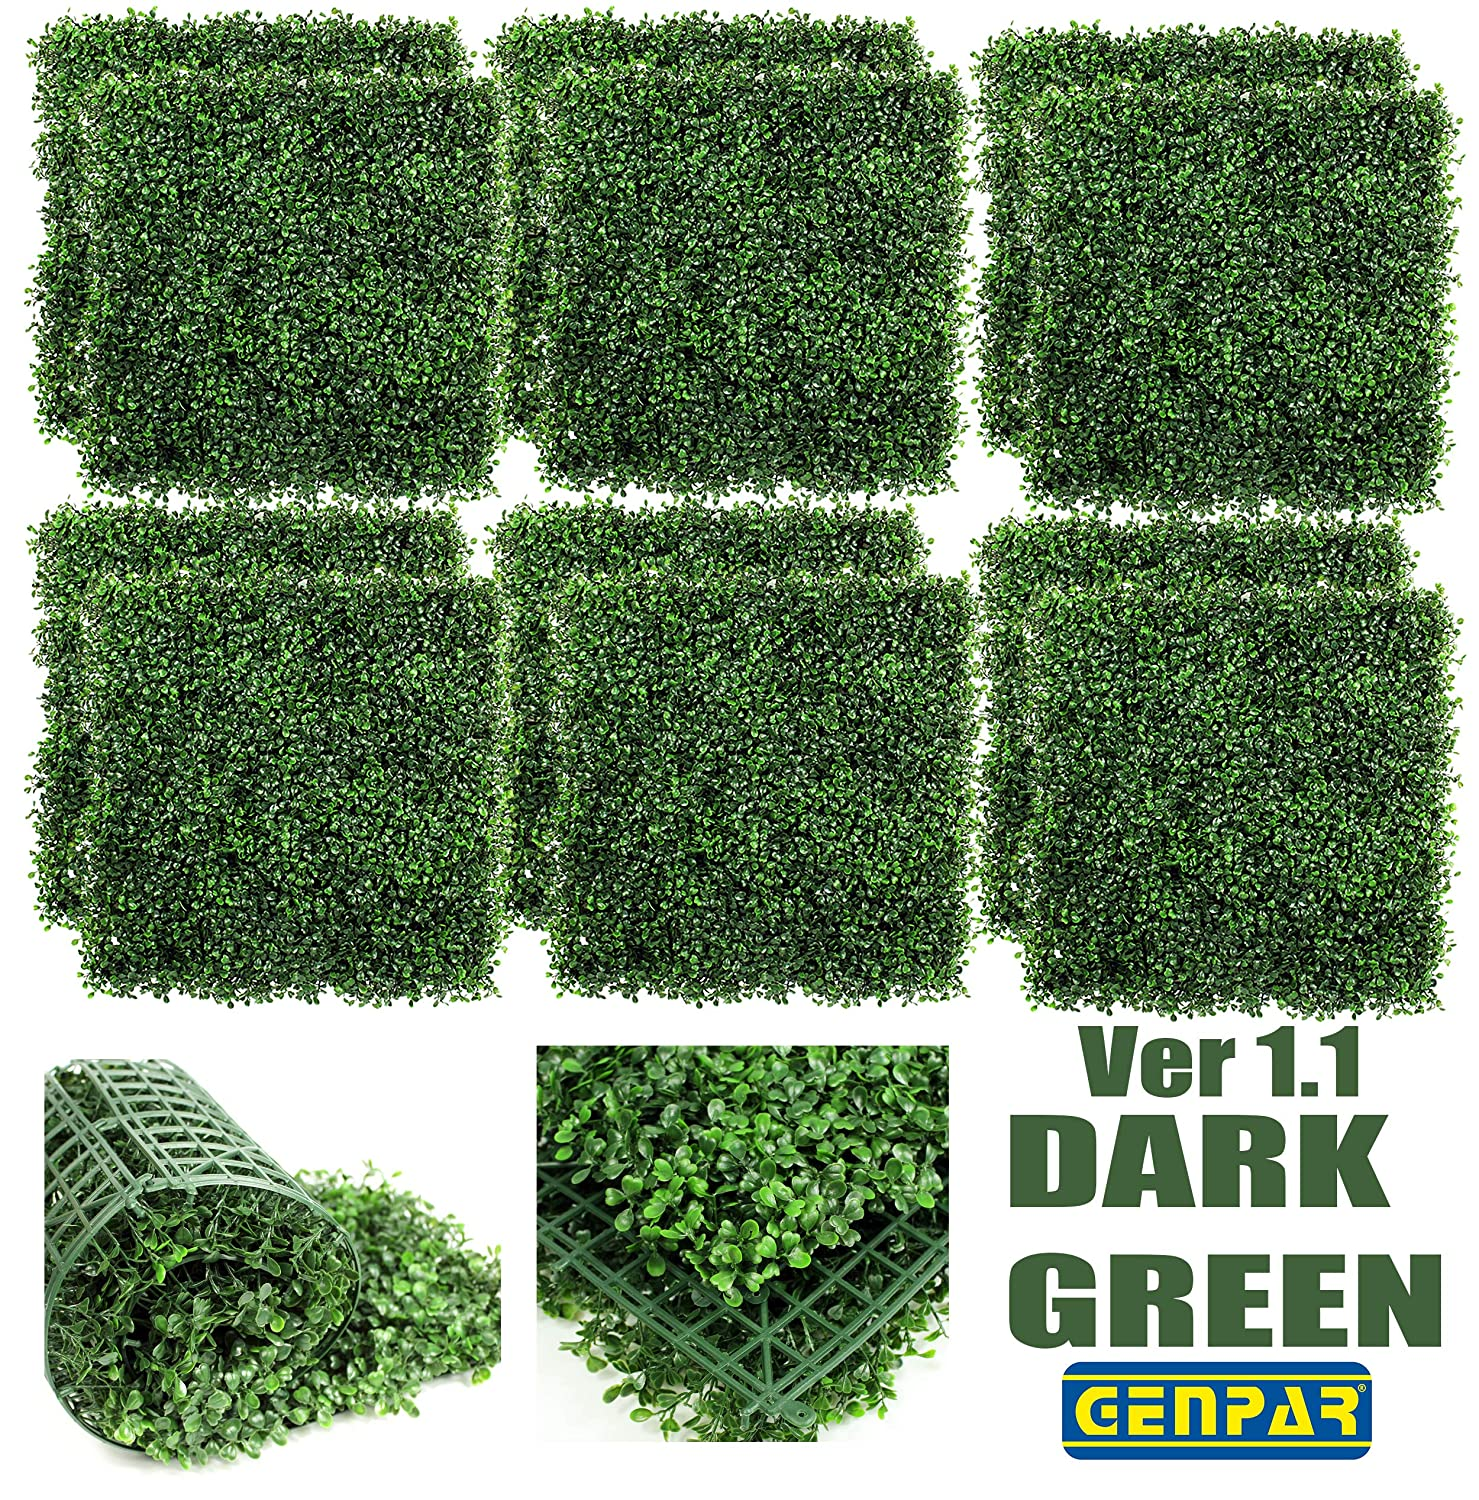 """GENPAR Artificial Boxwood Panels 12 Pieces 20"""" x 20"""" Cover 33 SQ FT Topiary Hedge Plant UV Protected Privacy Screen Outdoor Indoor FAUX Garden Fence Backyard Home Decor Greenery Walls (NEW Dark Green)"""